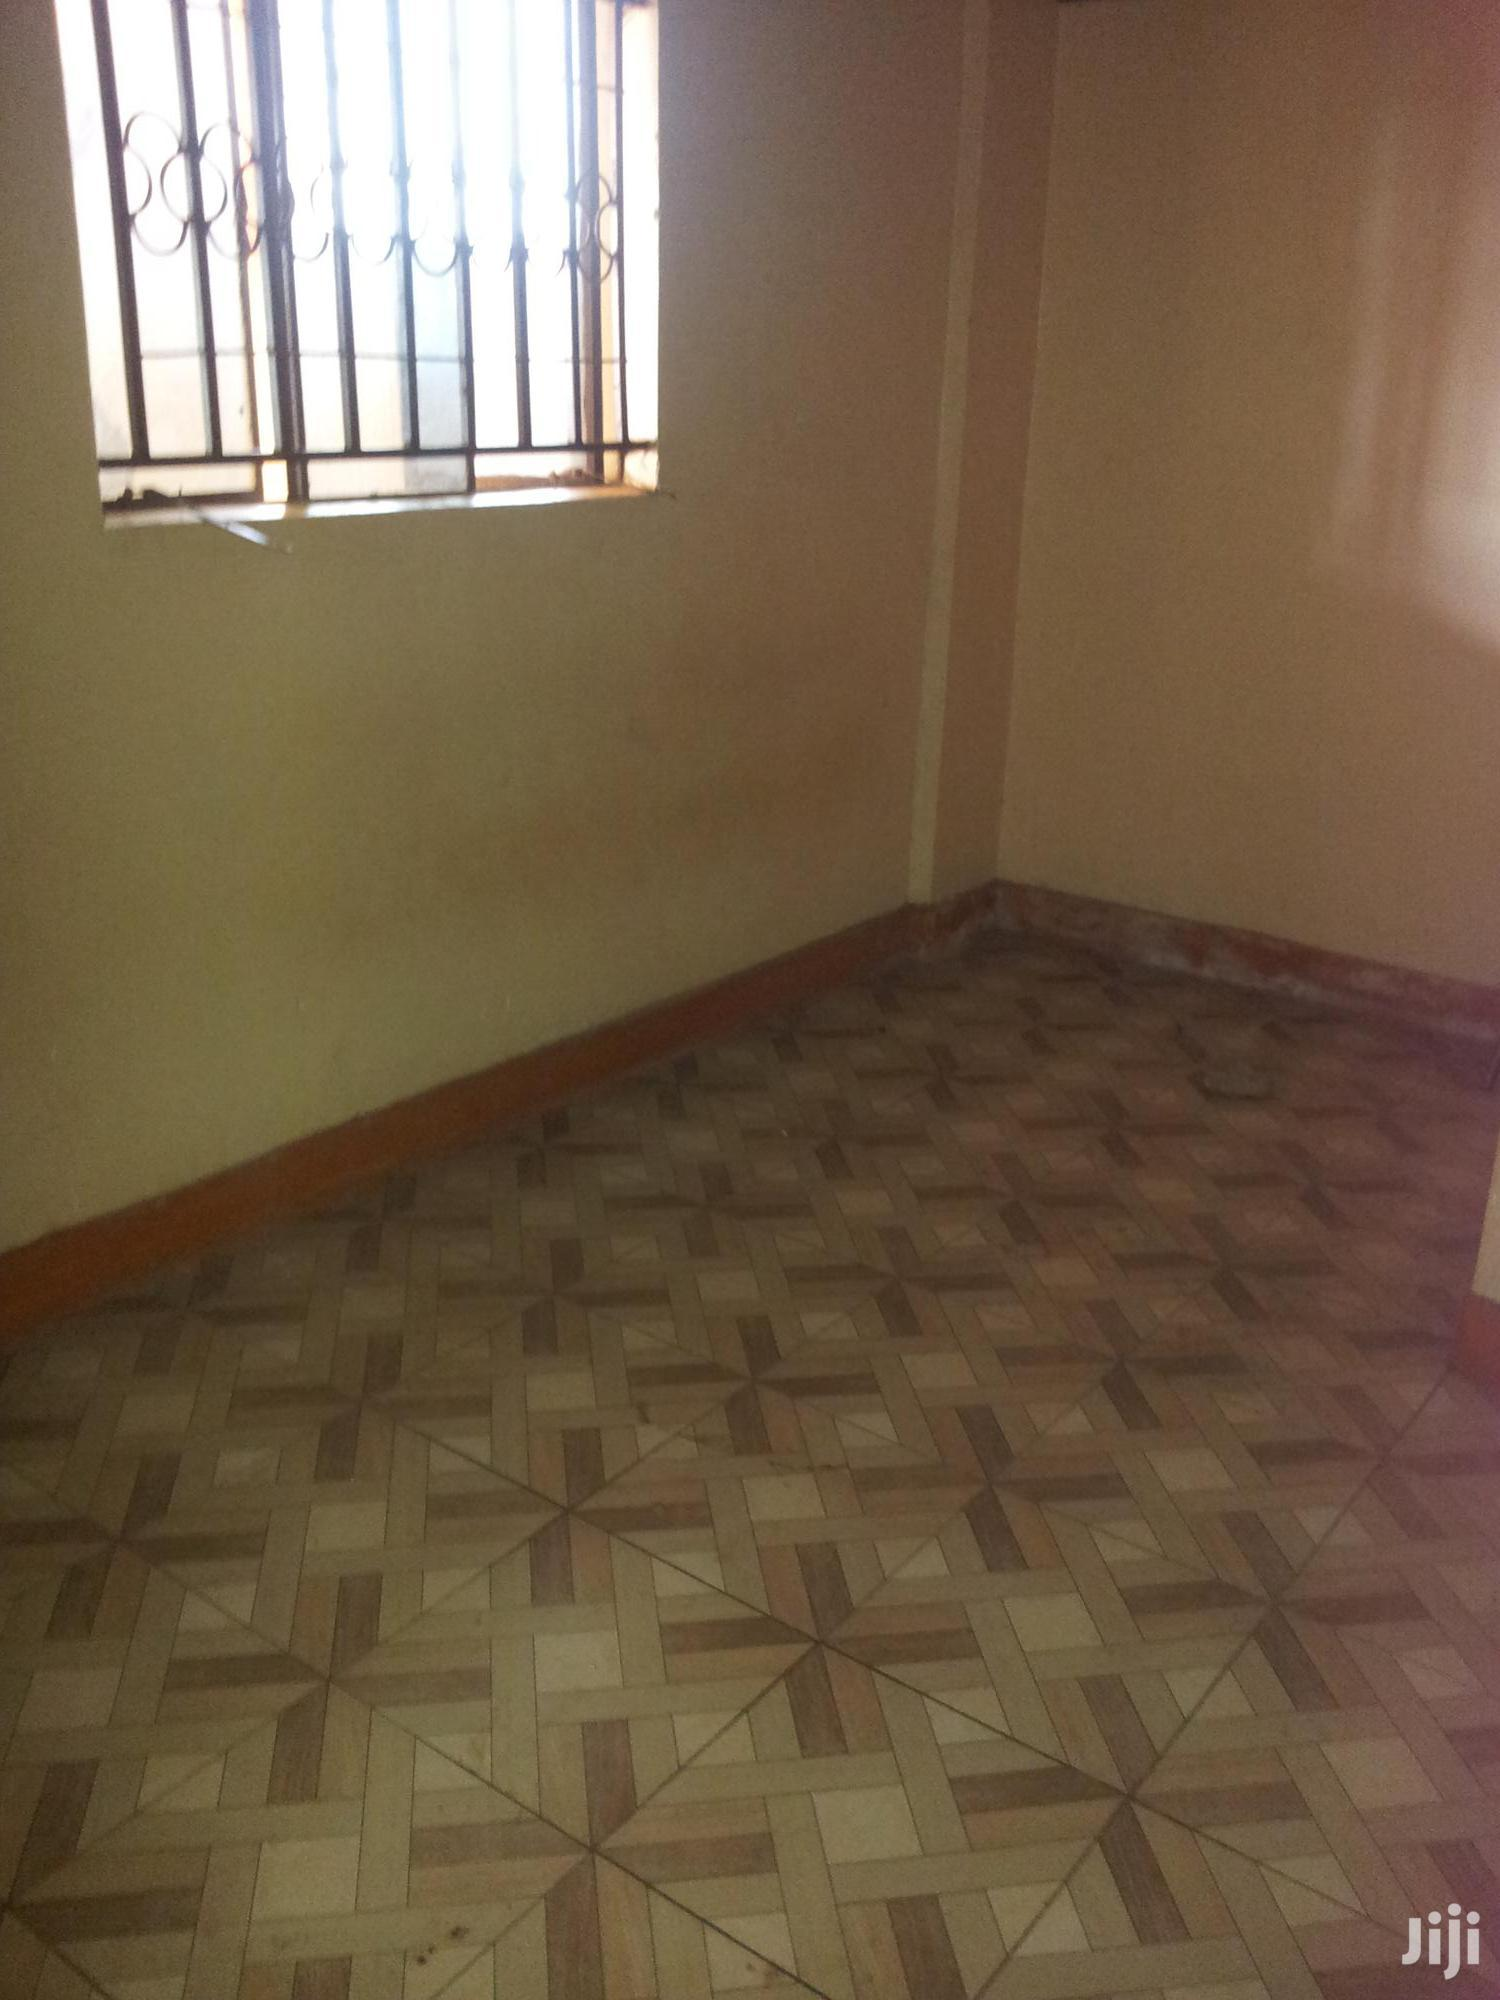 Single Bedroom Apartment In Makerere Kikoni For Rent | Houses & Apartments For Rent for sale in Kampala, Central Region, Uganda